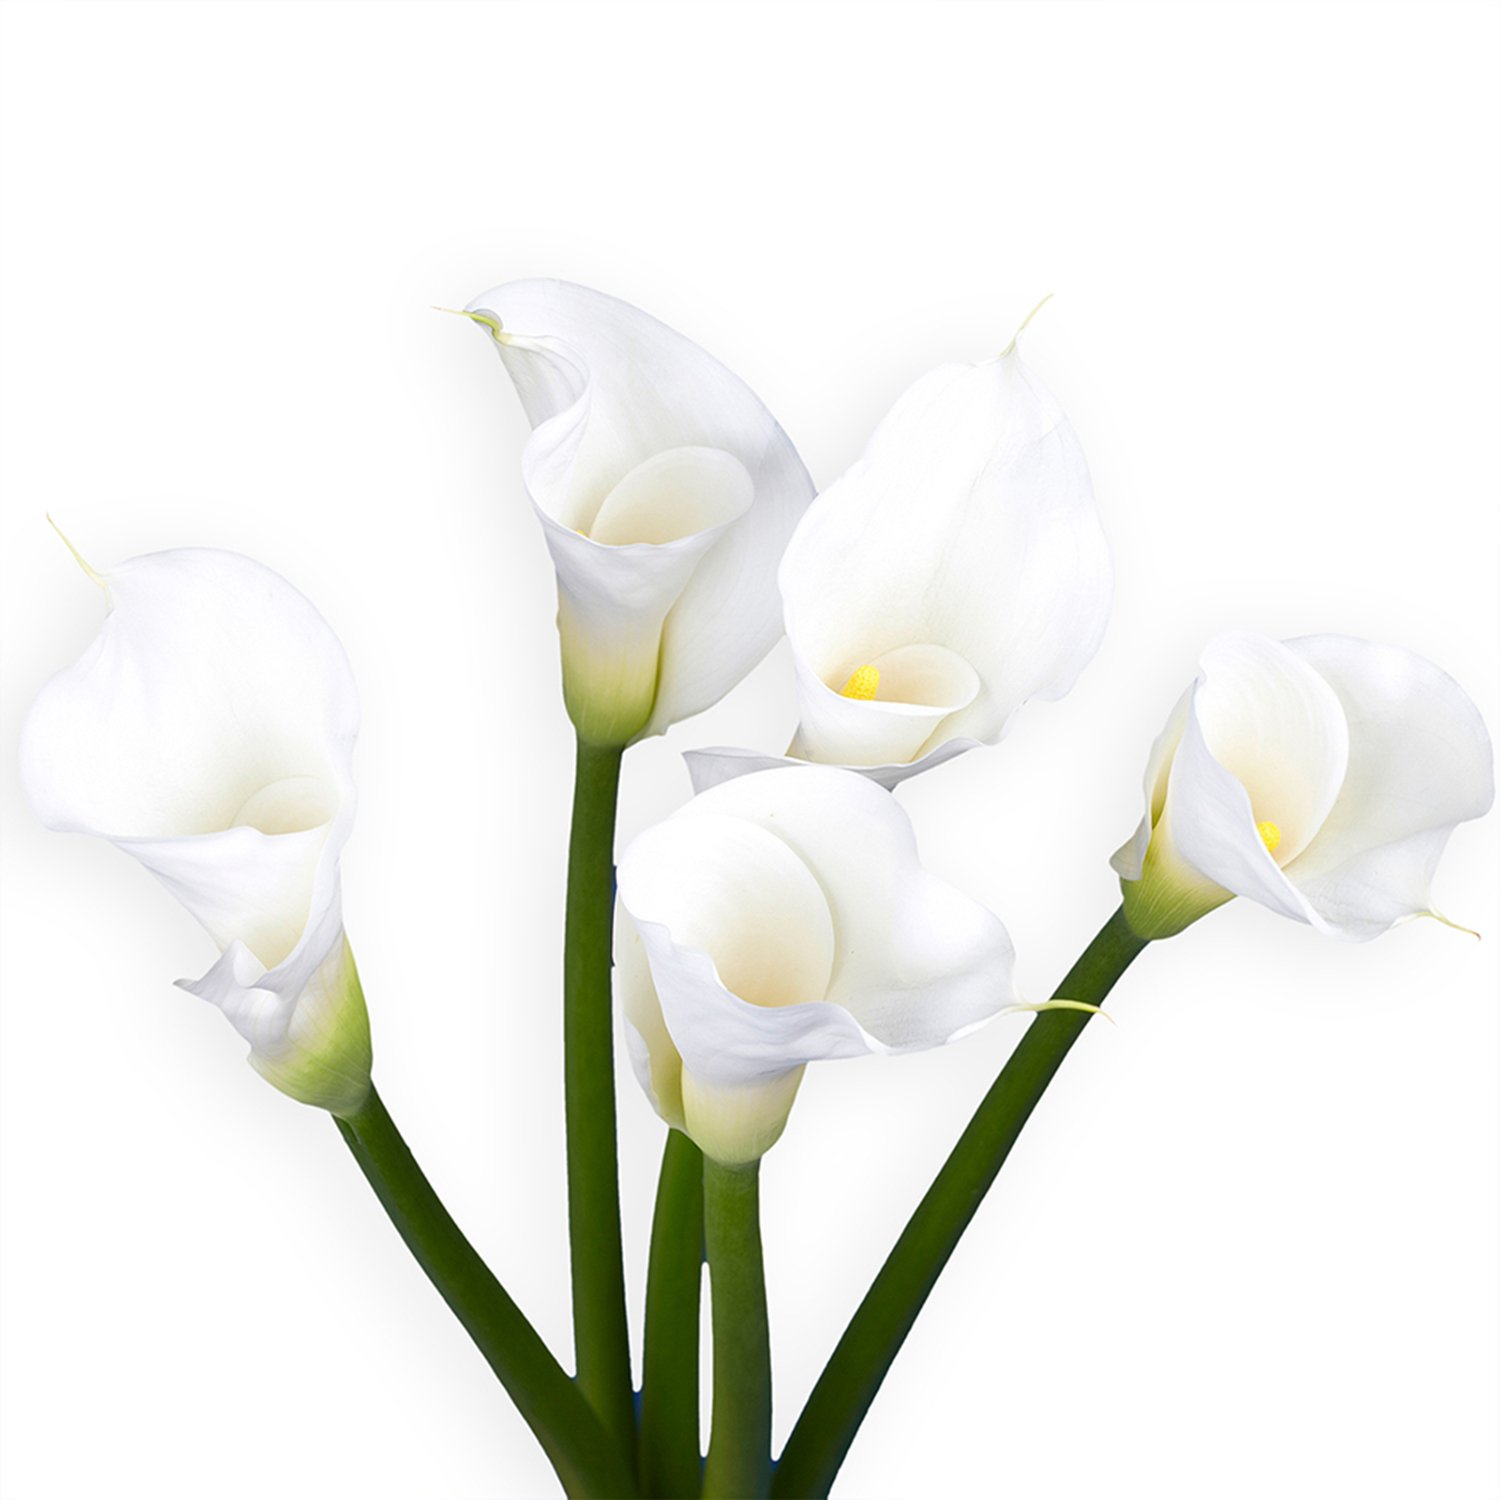 Amazon globalrose 36 fresh open cut white calla lilies fresh amazon globalrose 36 fresh open cut white calla lilies fresh flowers for birthdays weddings or anniversary fresh cut format lily flowers izmirmasajfo